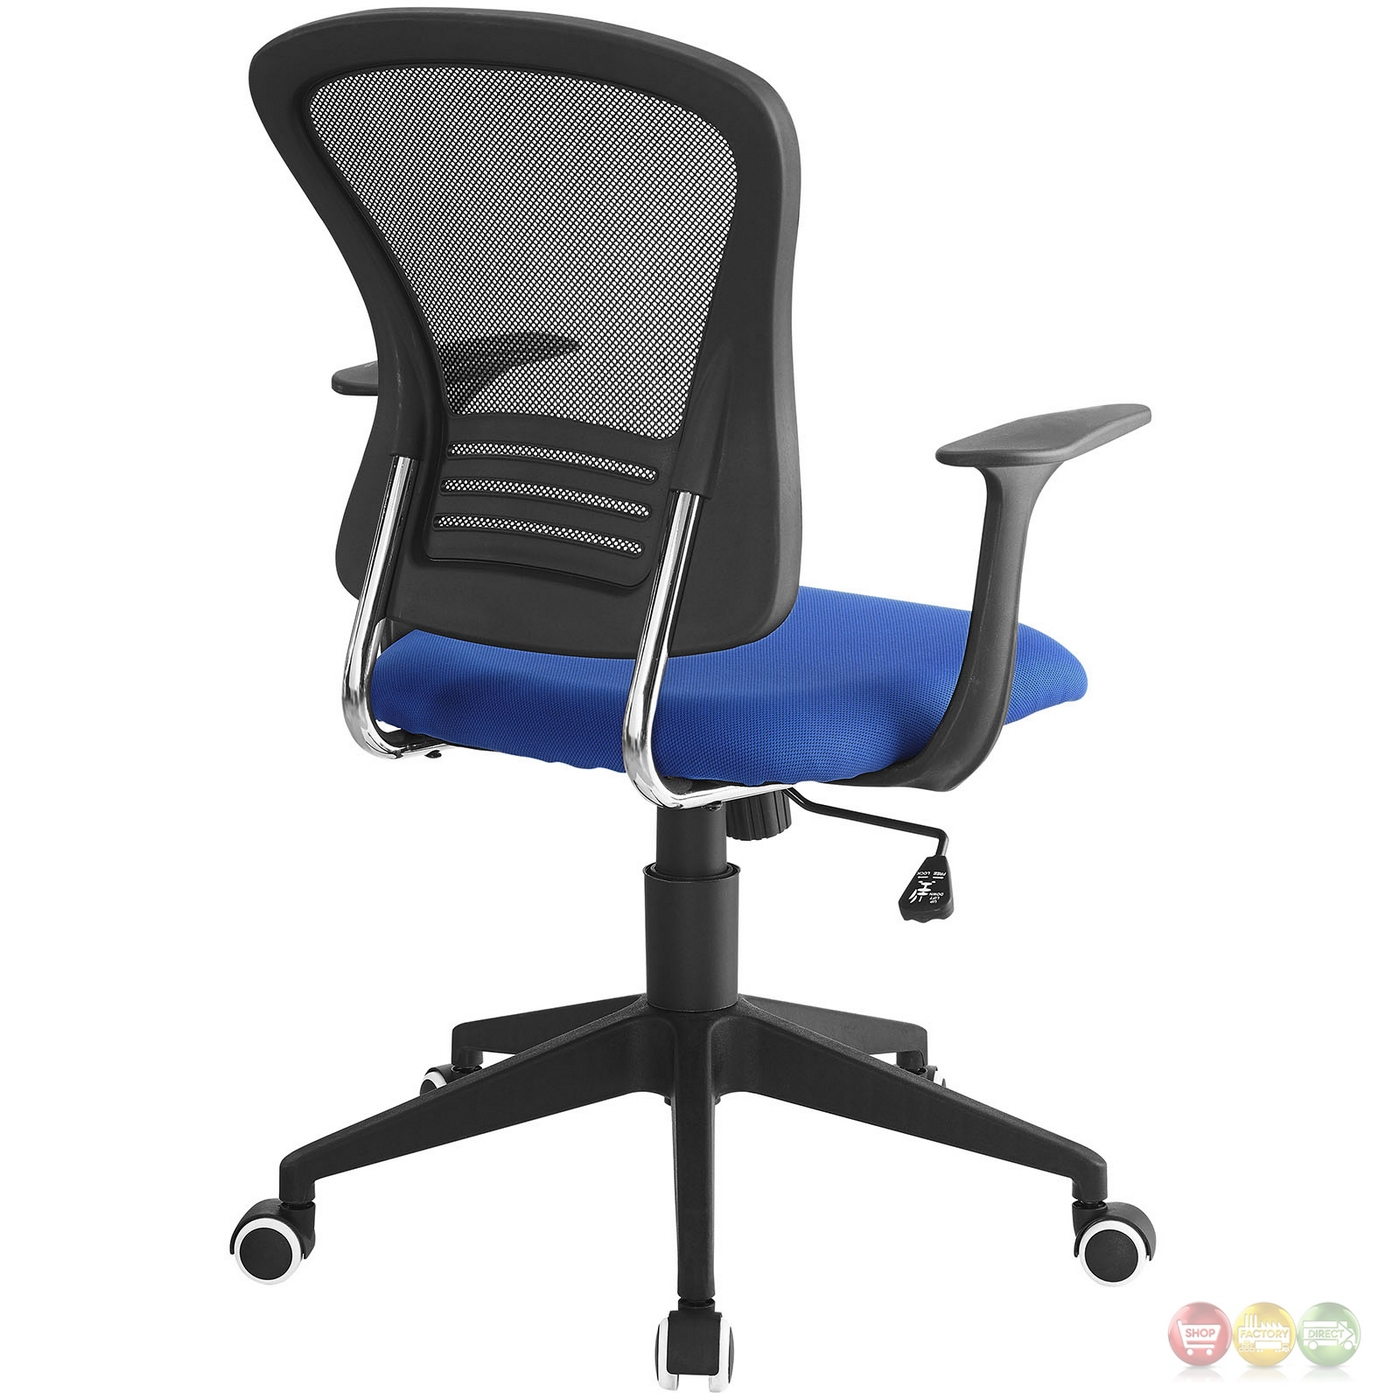 Mesh Ergonomic Office Chair Poise Modern Ergonomic Mesh Back Office Chair With Lumbar